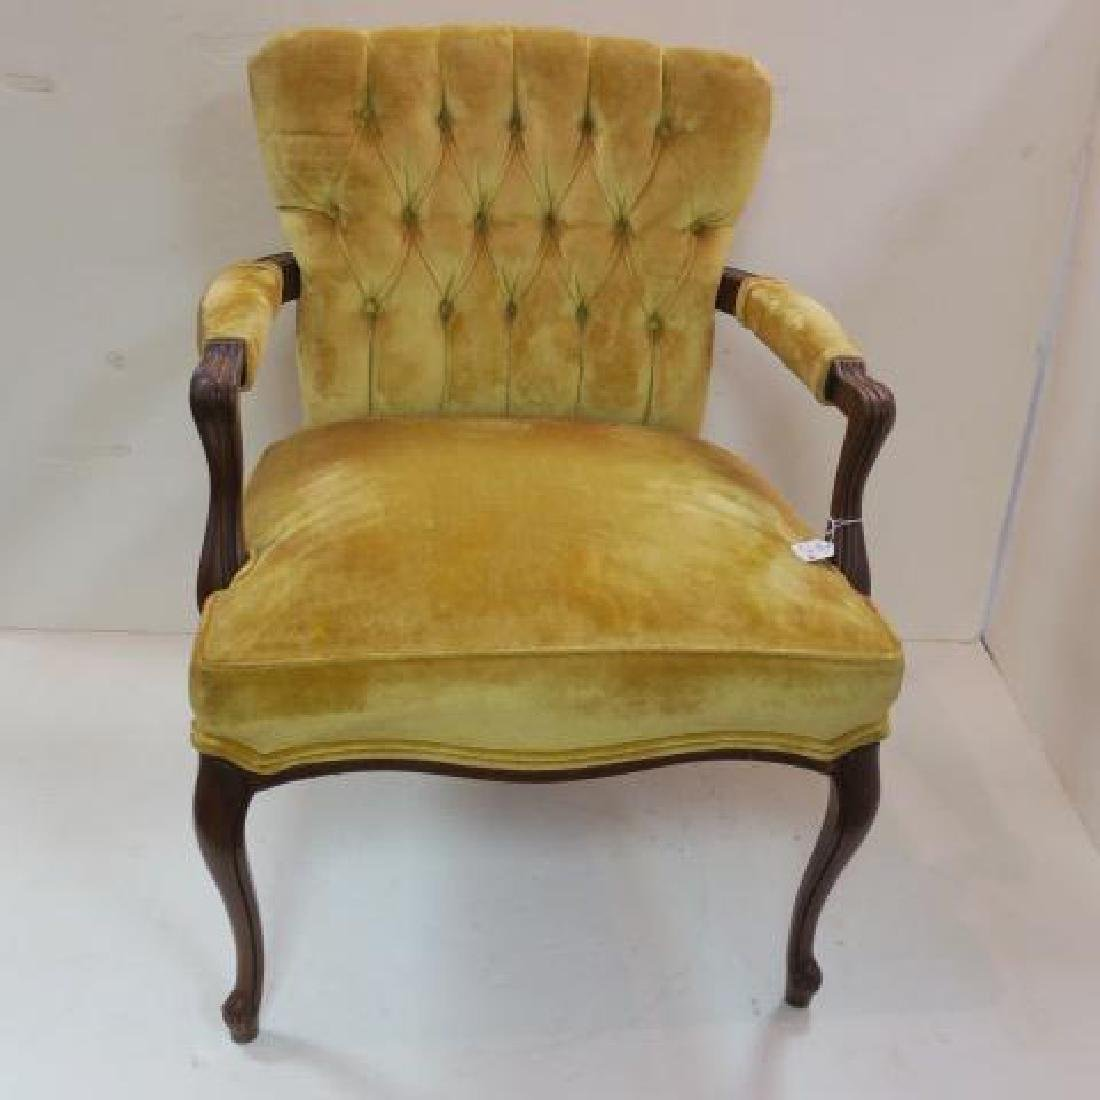 SUGGS & HARDIN MAHOGANY Frame Upholstered Arm Chair: